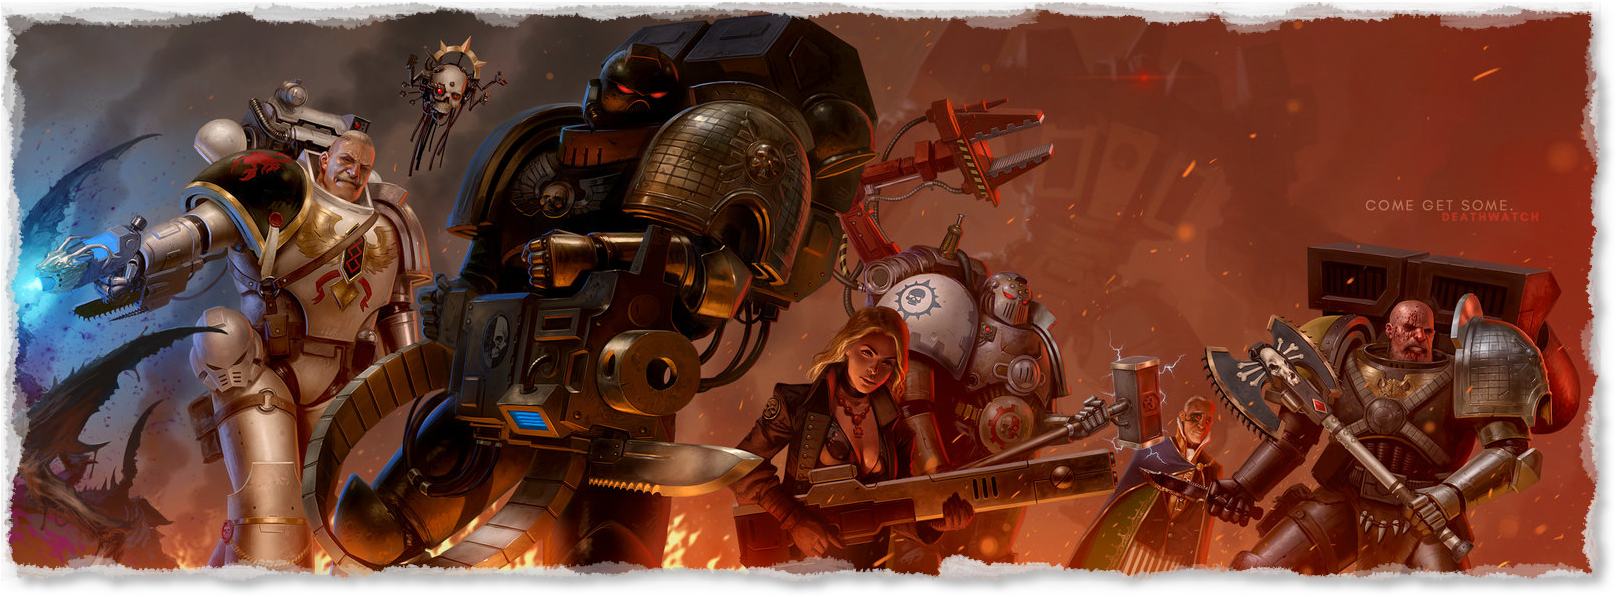 deathwatch_killteam_by_jedi_art_trick-d9vwyv2.png